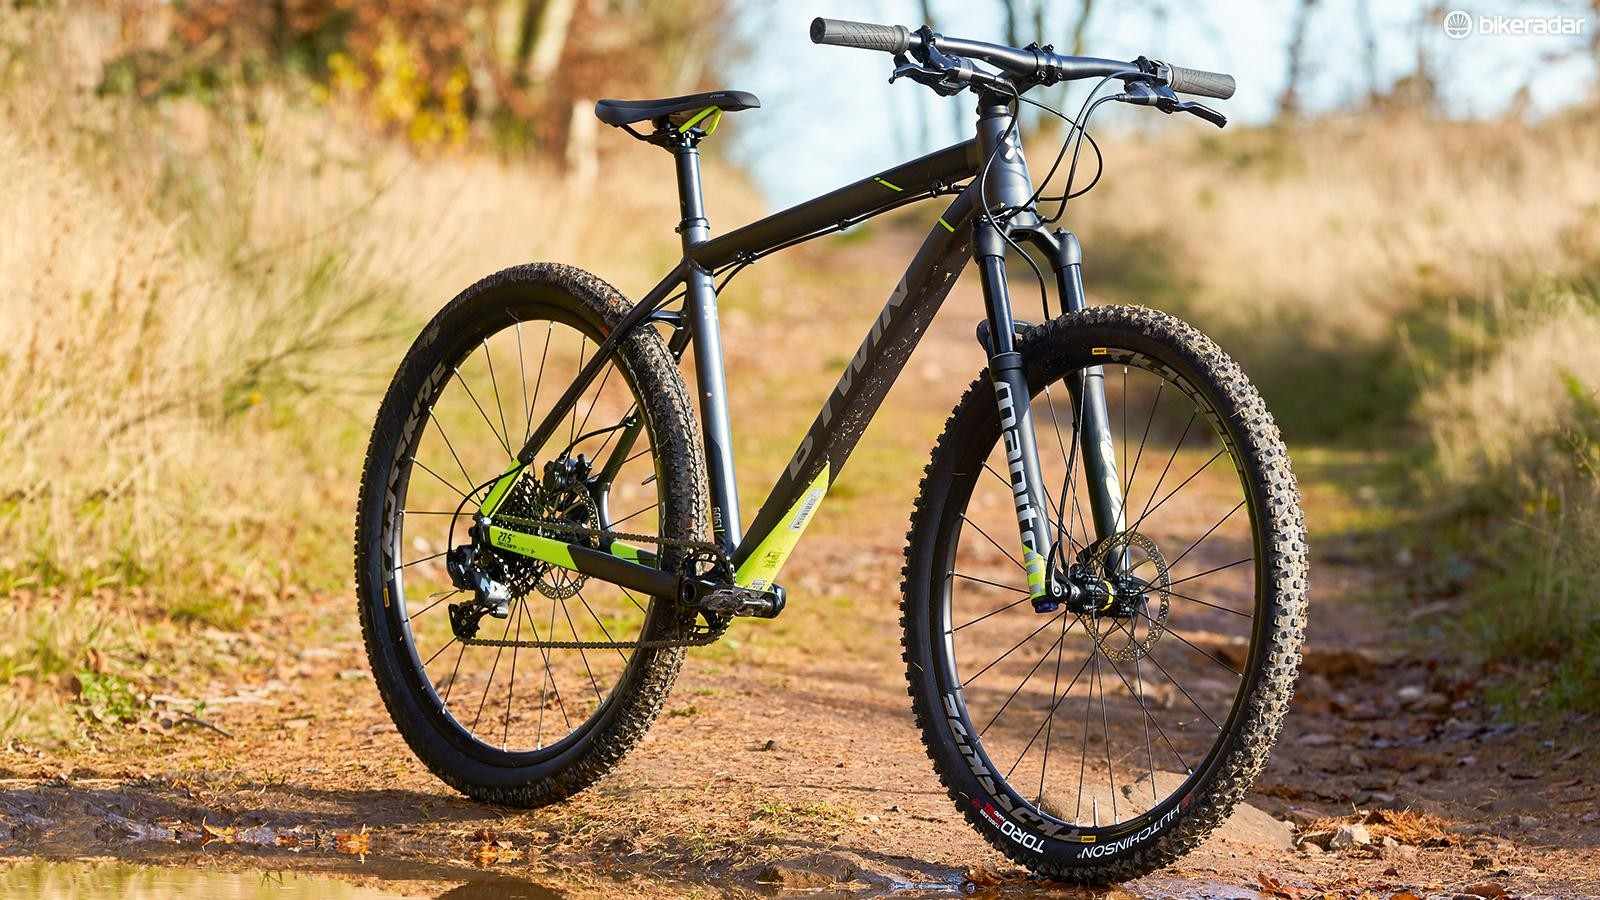 The big steel SRAM NX cassette is heavy but gives wide-range sequential shifting for less weight than a second chainring, front mech and shifter